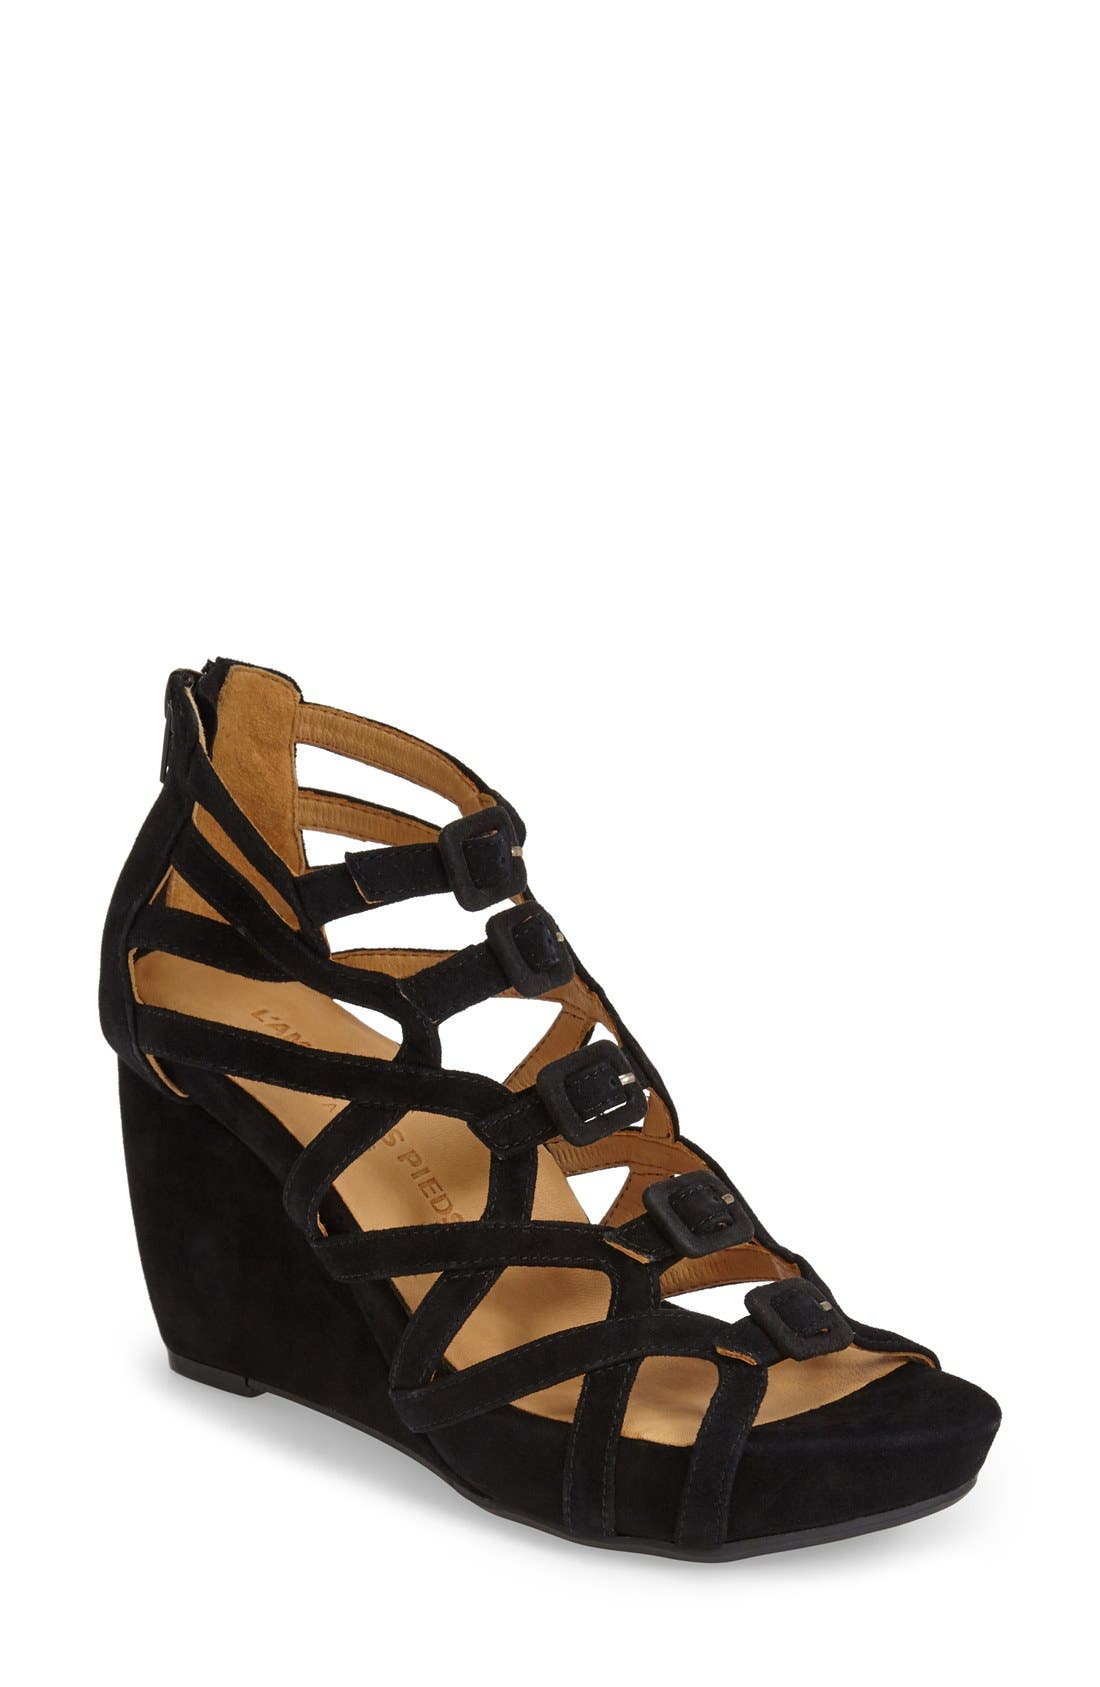 Ivanna' Gladiator Wedge Sandal,                             Main thumbnail 2, color,